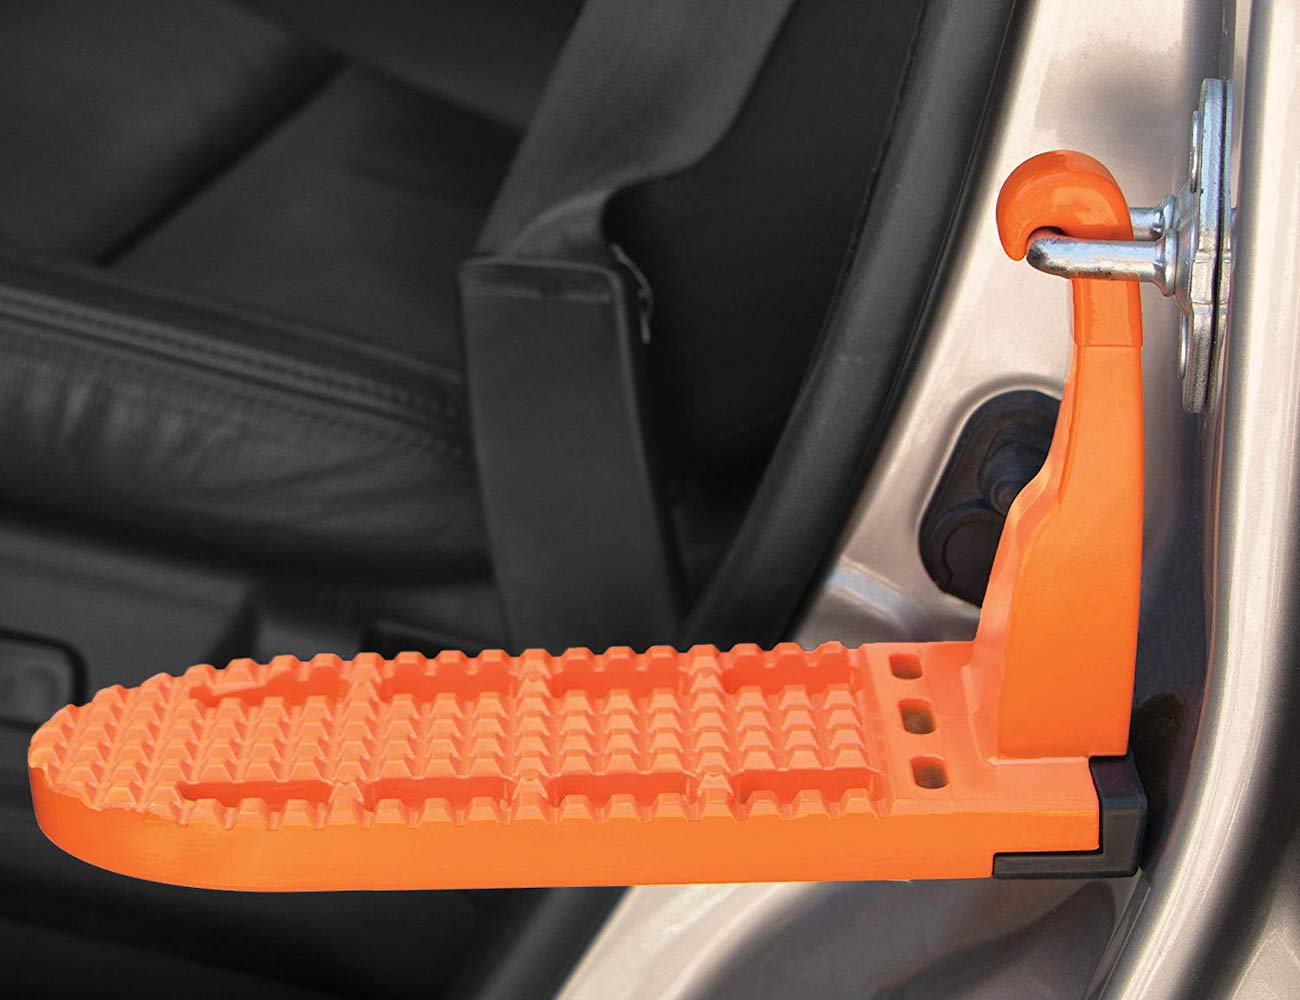 Rightline Gear Moki Car Door Step makes it easy to reach your roof